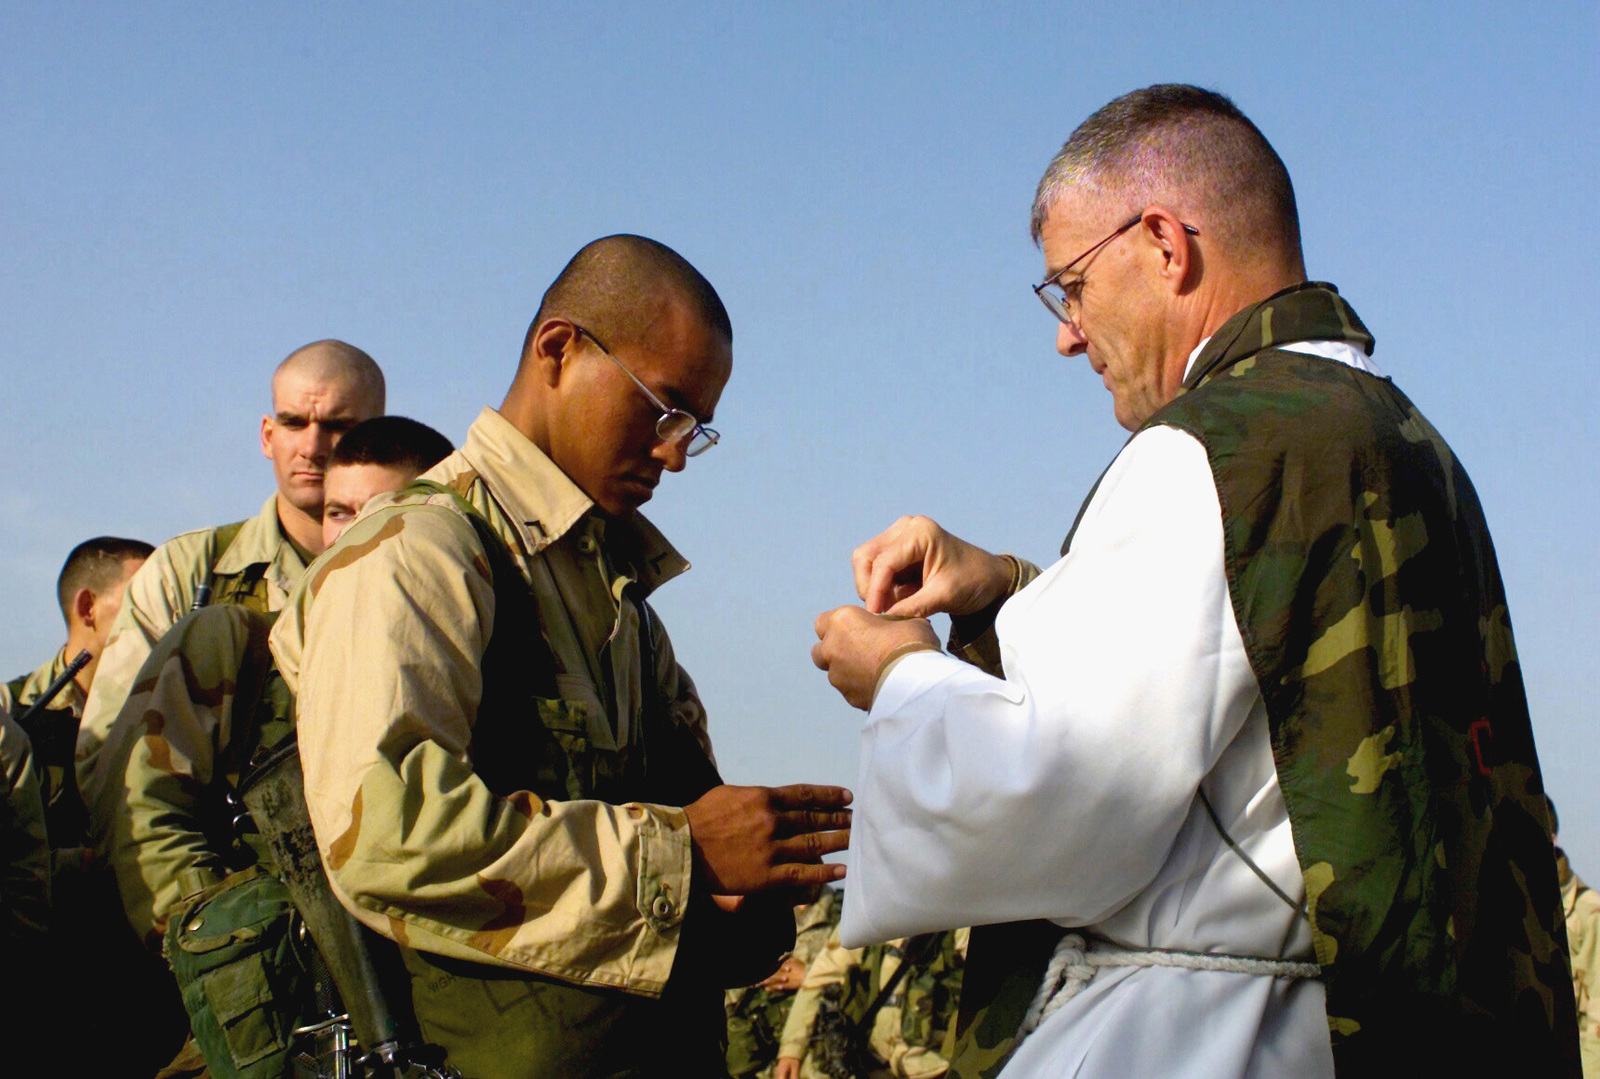 """US Marine Corps (USMC) Private First Class (PFC) Ricardo Castillo, 7th Marines3rd Battalion, 4th Marines (3/4) Weapons Company attends the morning Catholic services held by US Navy (USN) Lieutenant (LT) William """"Bill"""" Devine, Chaplain, early morning Sunday at Camp Coyote, Kuwait"""